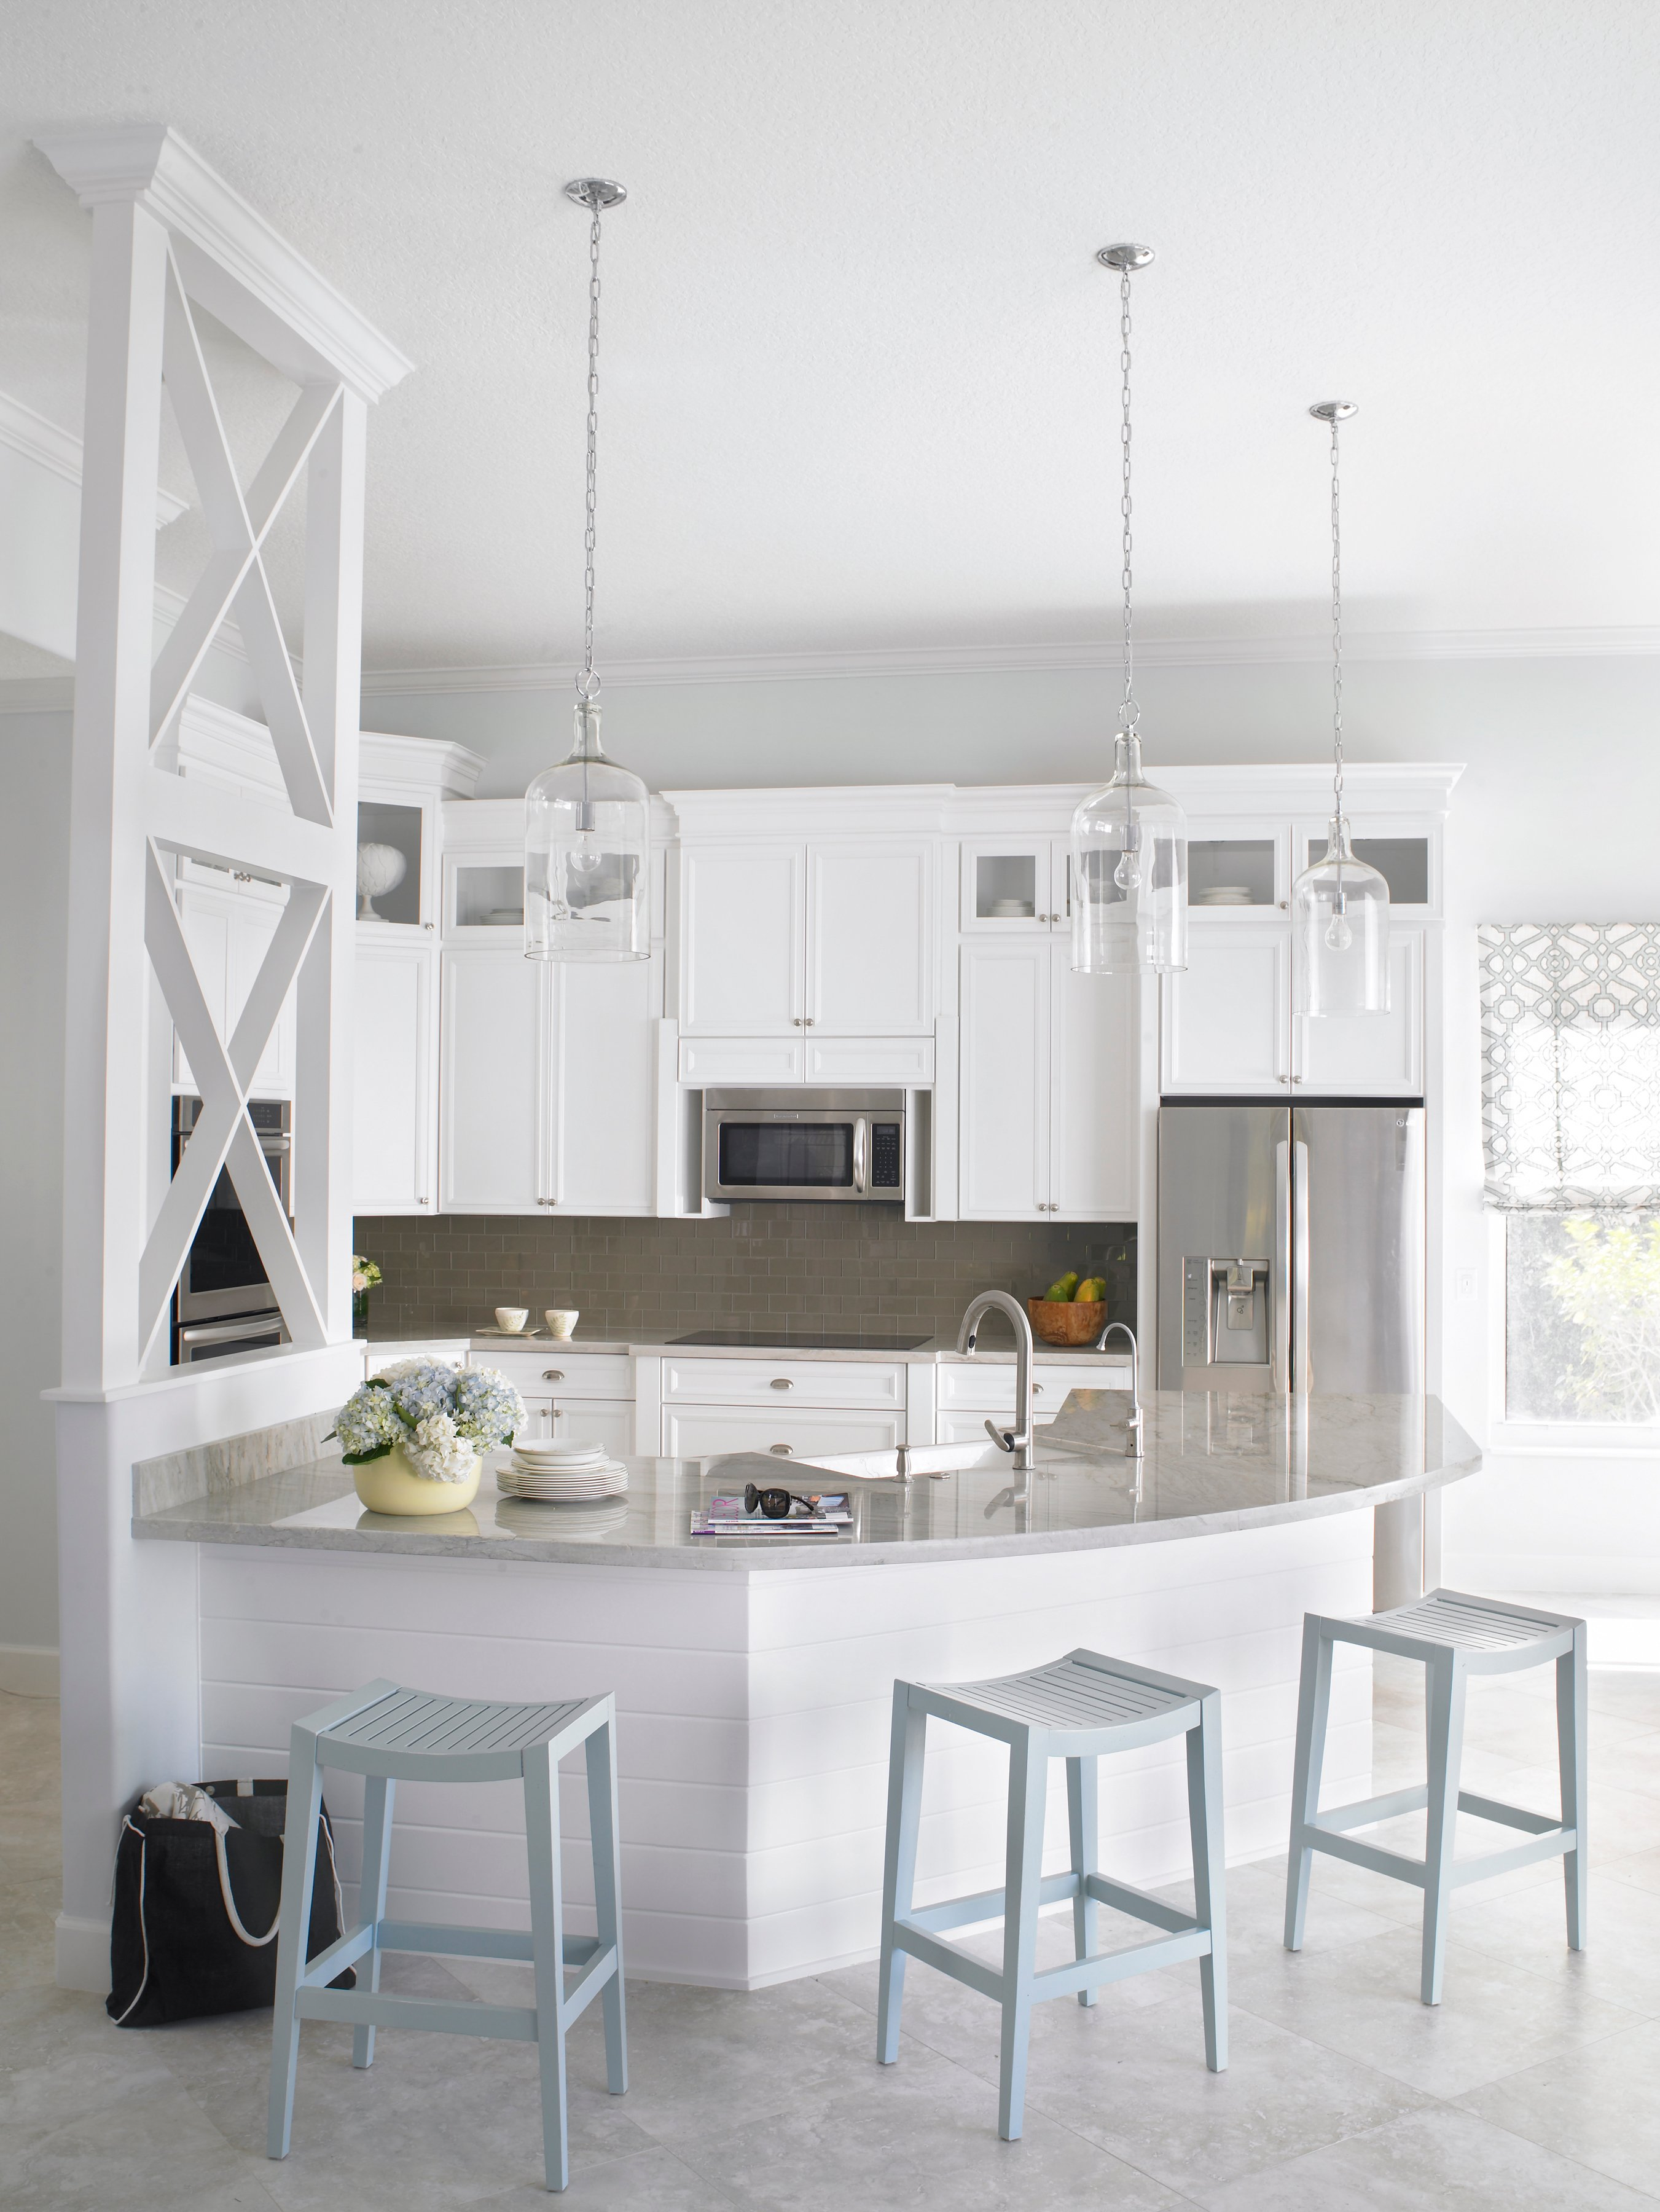 This view of the kitchen shows the cooking area, with darker subway tiles in the backsplash. The kitchen island is shiplap painted white to match the rest of the kitchen. Separating one end of the bar and the work area is an elegant dividing wall with rustic charm. Glass pendant lights hang above the kitchen island.